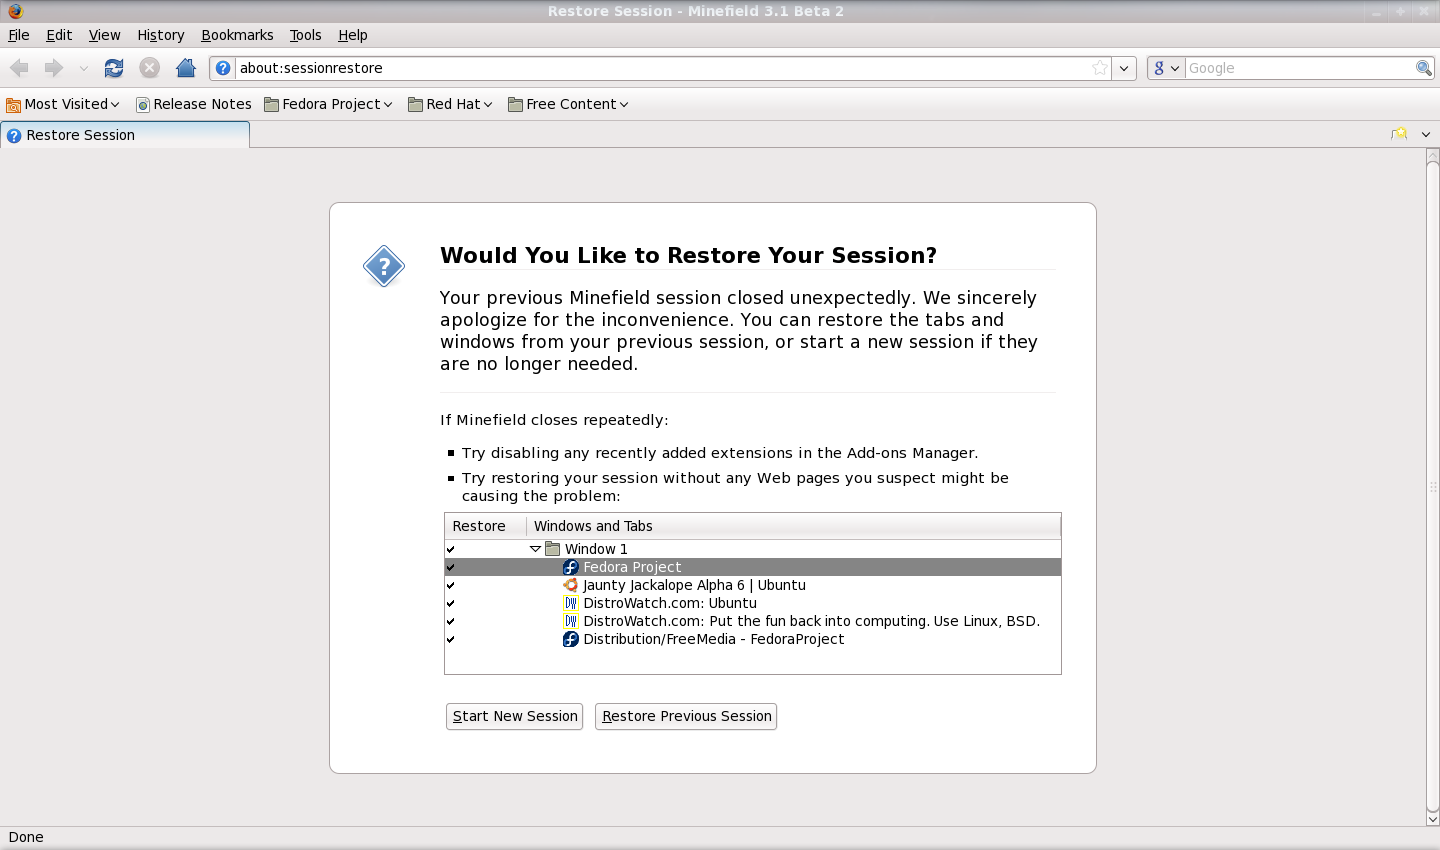 Firefox 3.5 aboutsessionrestore